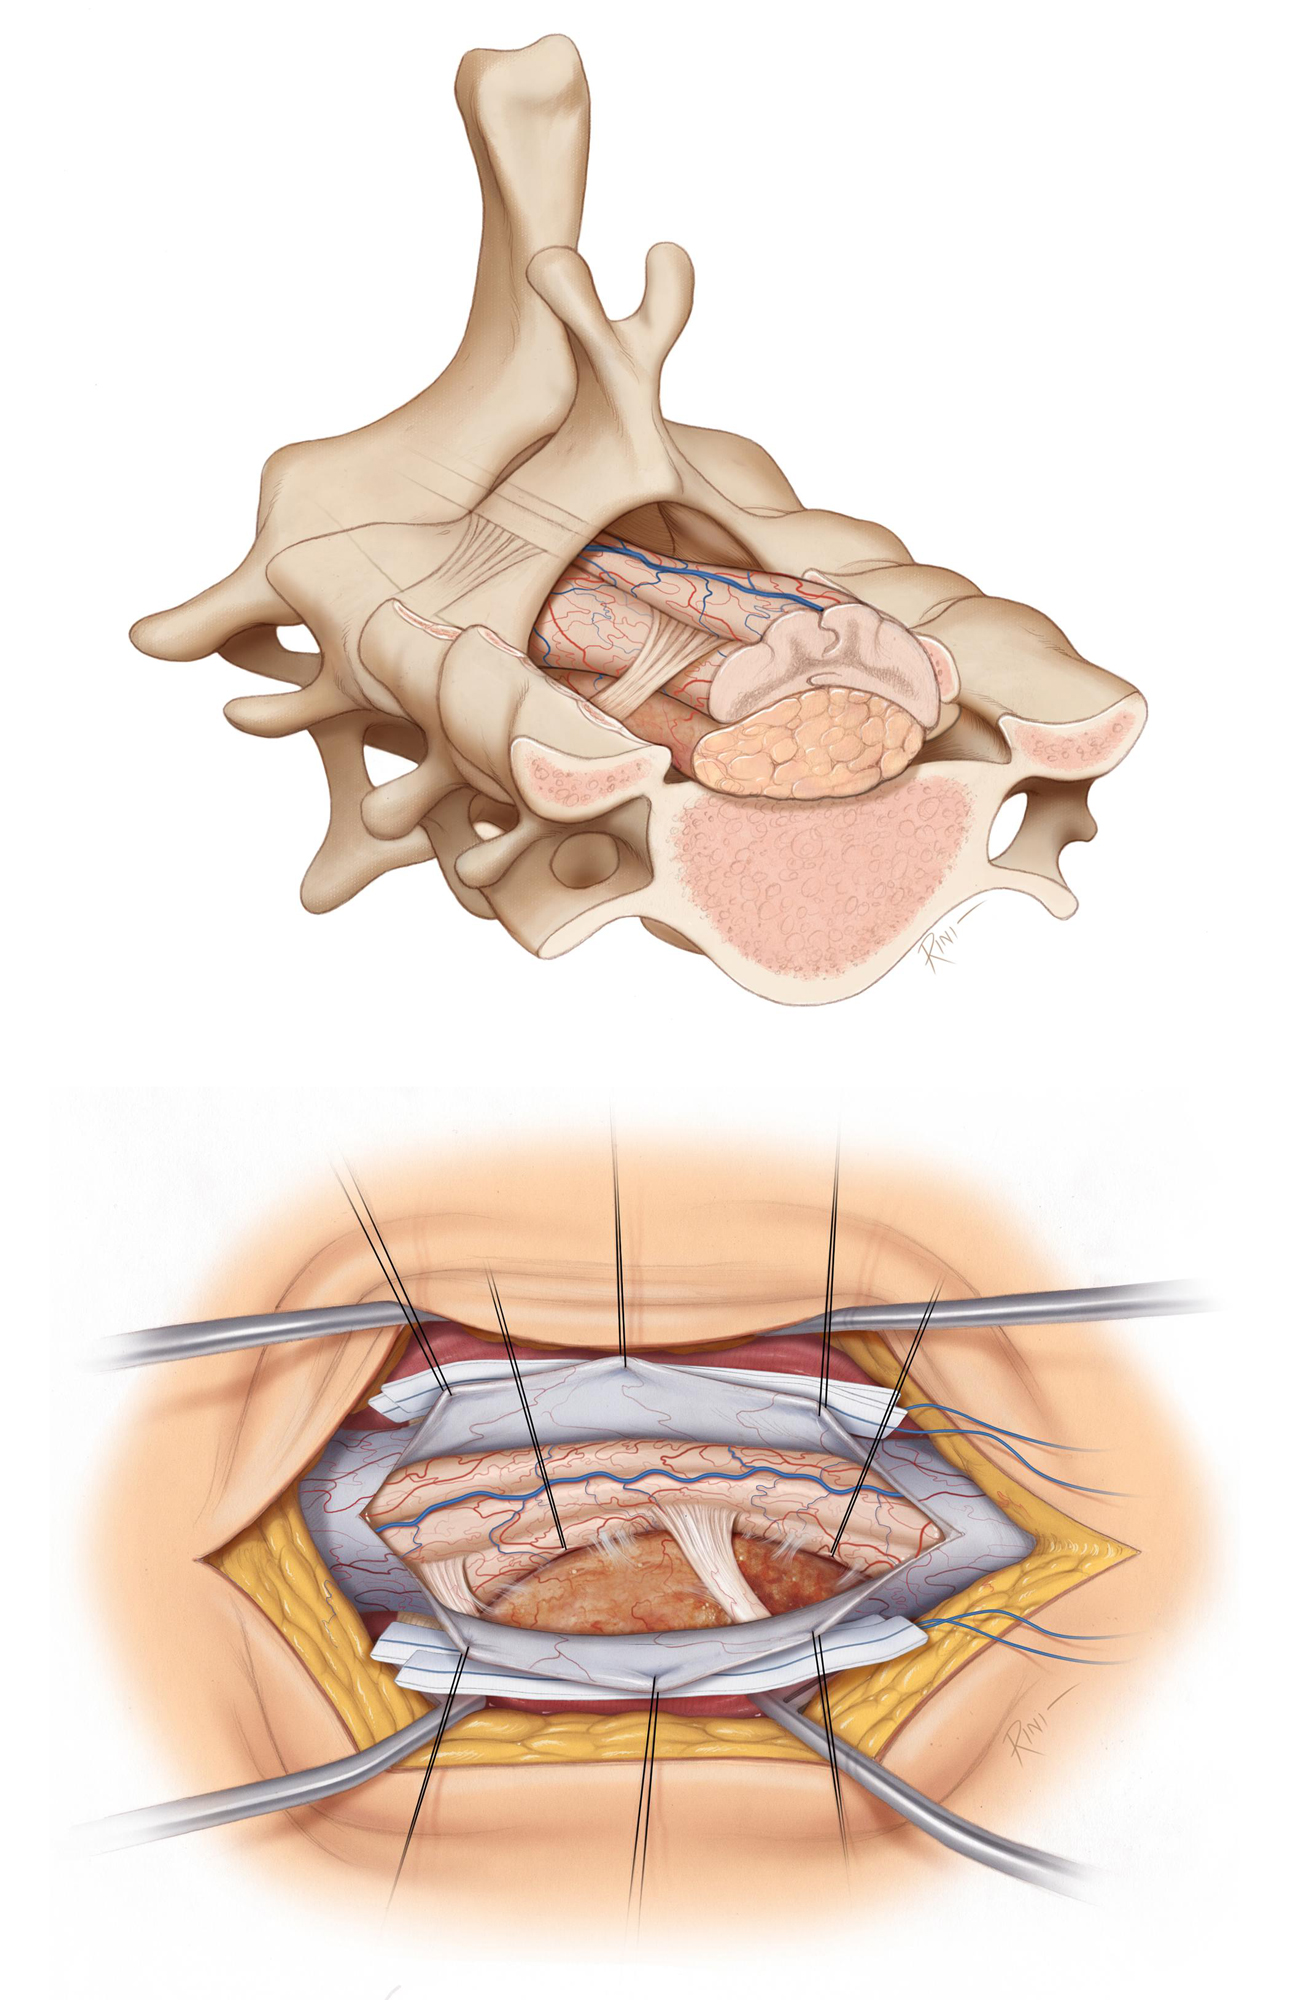 Figure 5: In particular cases and for example in the cervical spine, the approach may be extended posterolaterally incrementally by removing the facet joint, pedicle, or even the lateral mass. Densely calcified tumors are initially approached through the posterolateral route. If resection is not deemed possible because of the need for spinal cord manipulation, the patient should be scheduled for an anterior approach at a later date. Extensive facet removal may require an arthrodesis procedure for spinal stabilization. The top sketch illustrates the use of aggressive bone removal on the right side for reaching the tumor without a need for extensive cord manipulation. The bottom illustration of the operative perspective depicts the use of pial/dentate ligament retraction sutures to gently mobilize the cord and further uncover the lesion.